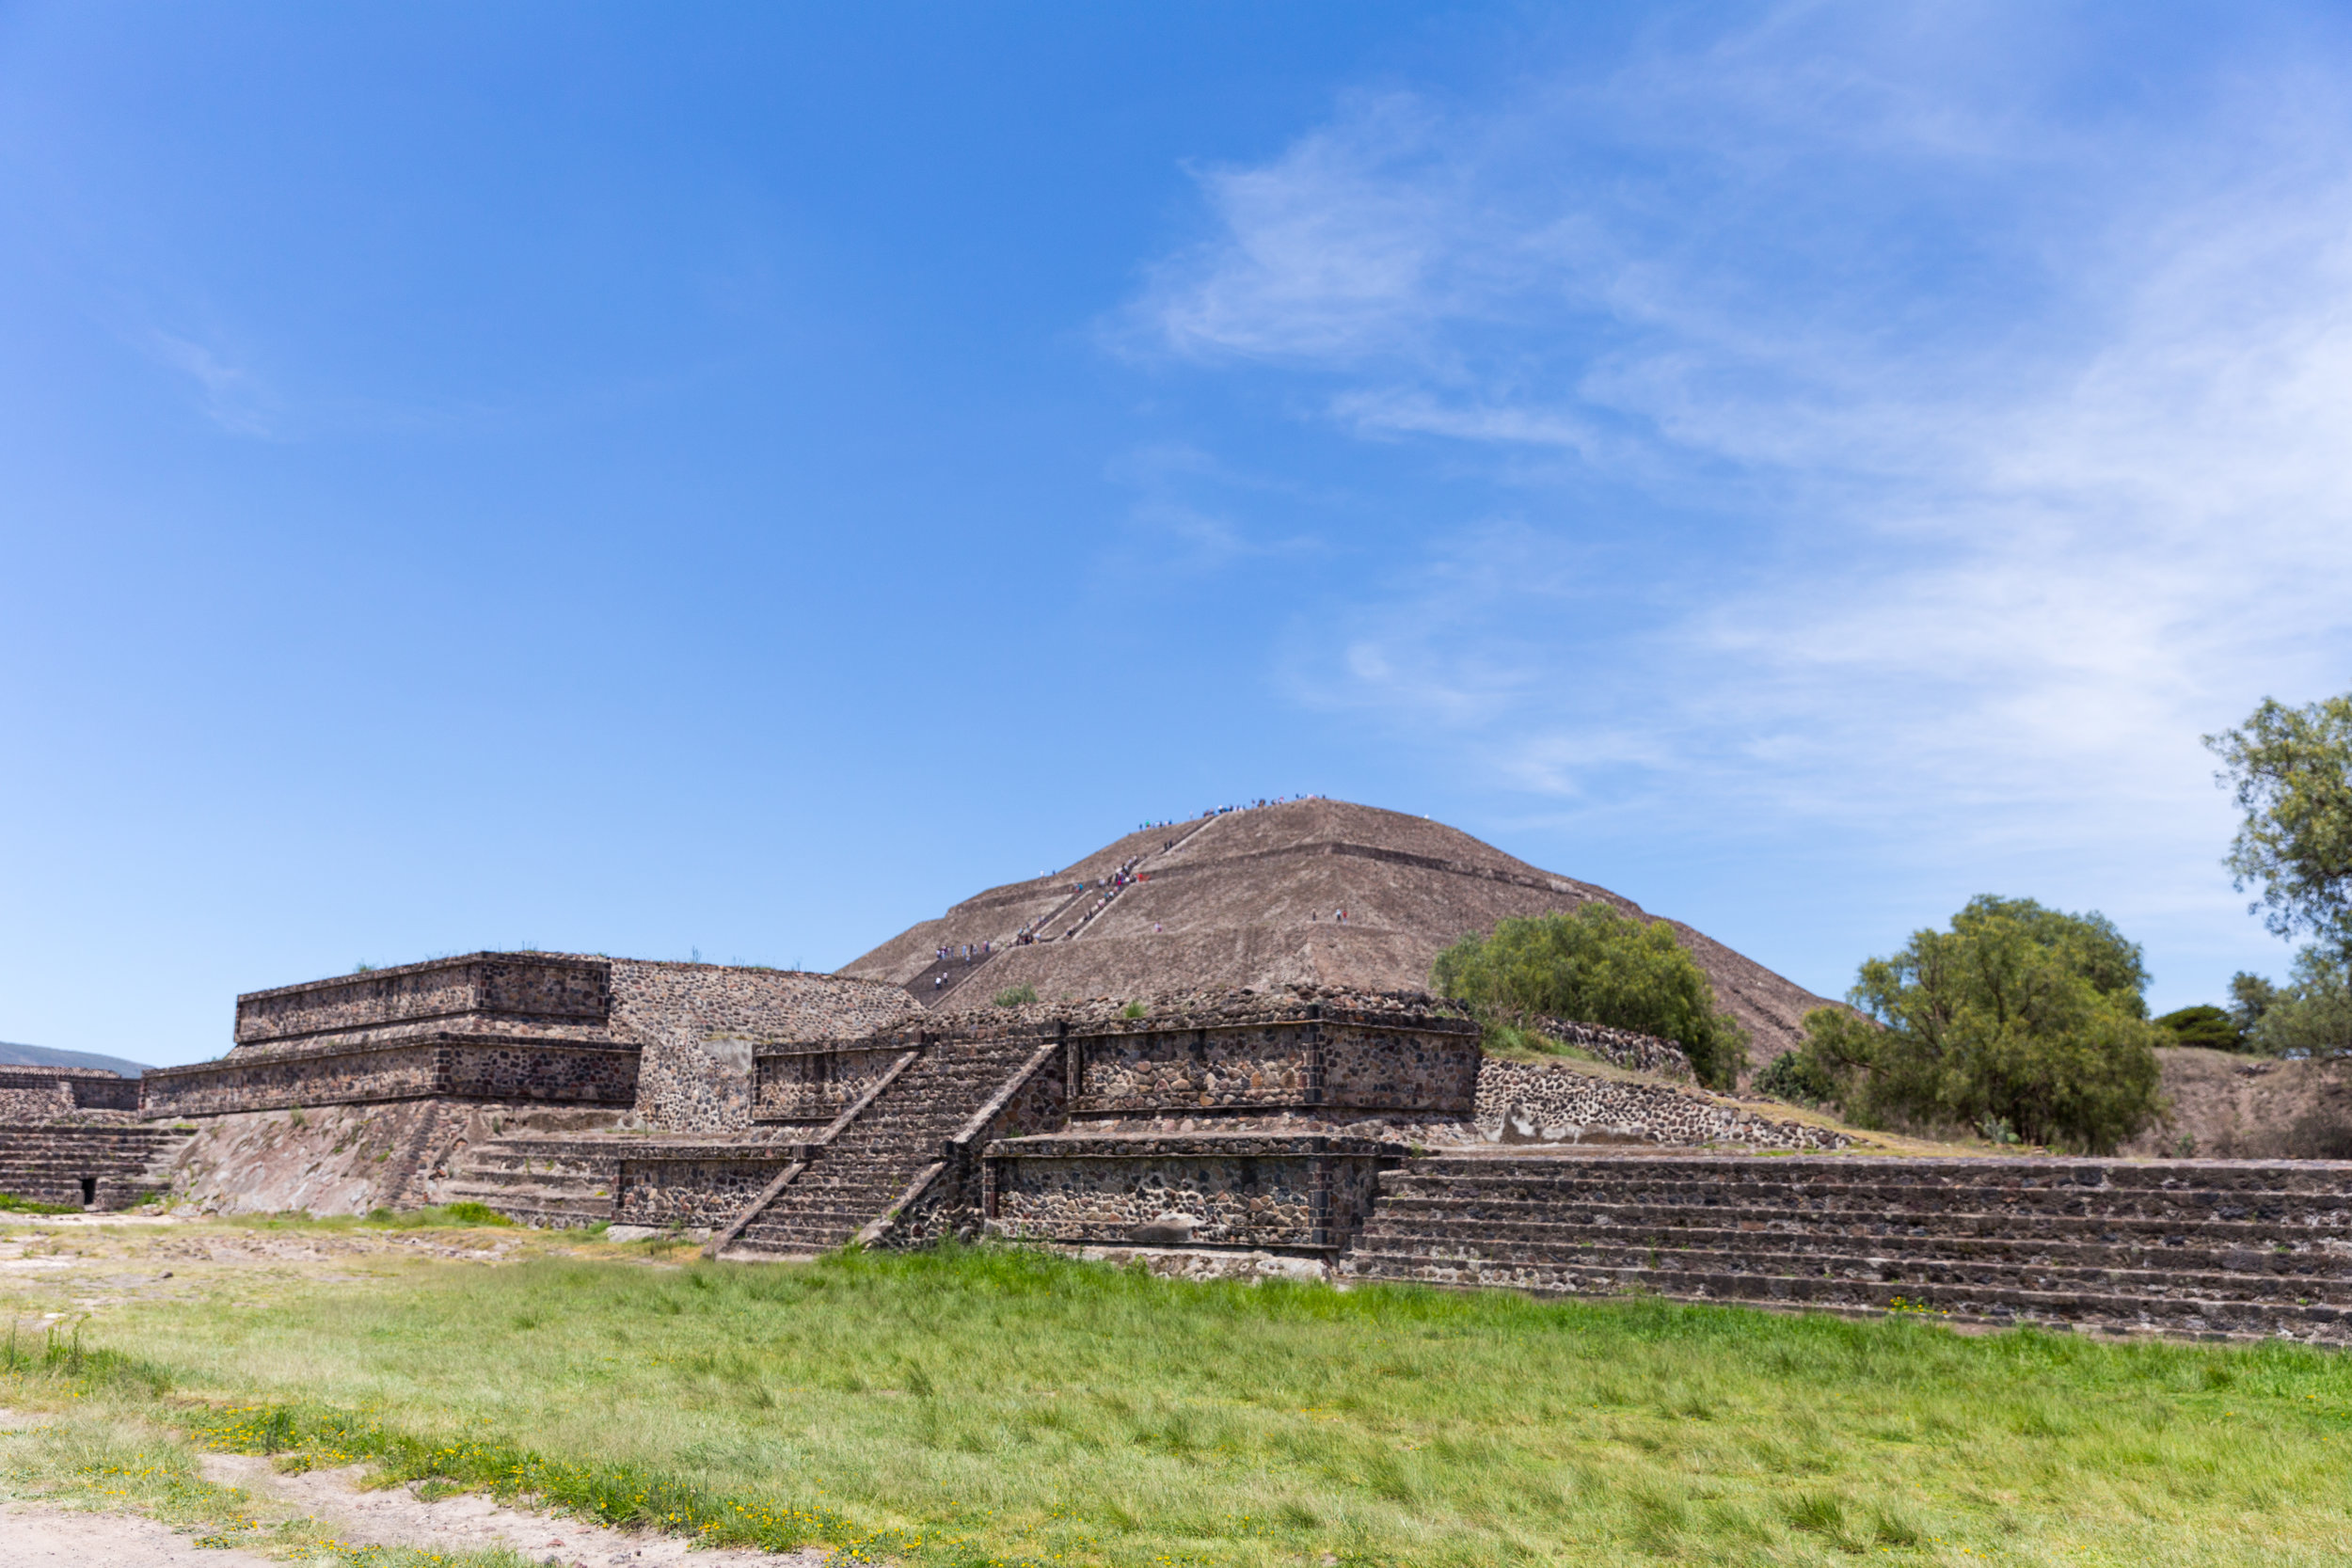 Mexico City Teotihuacan-4.jpg